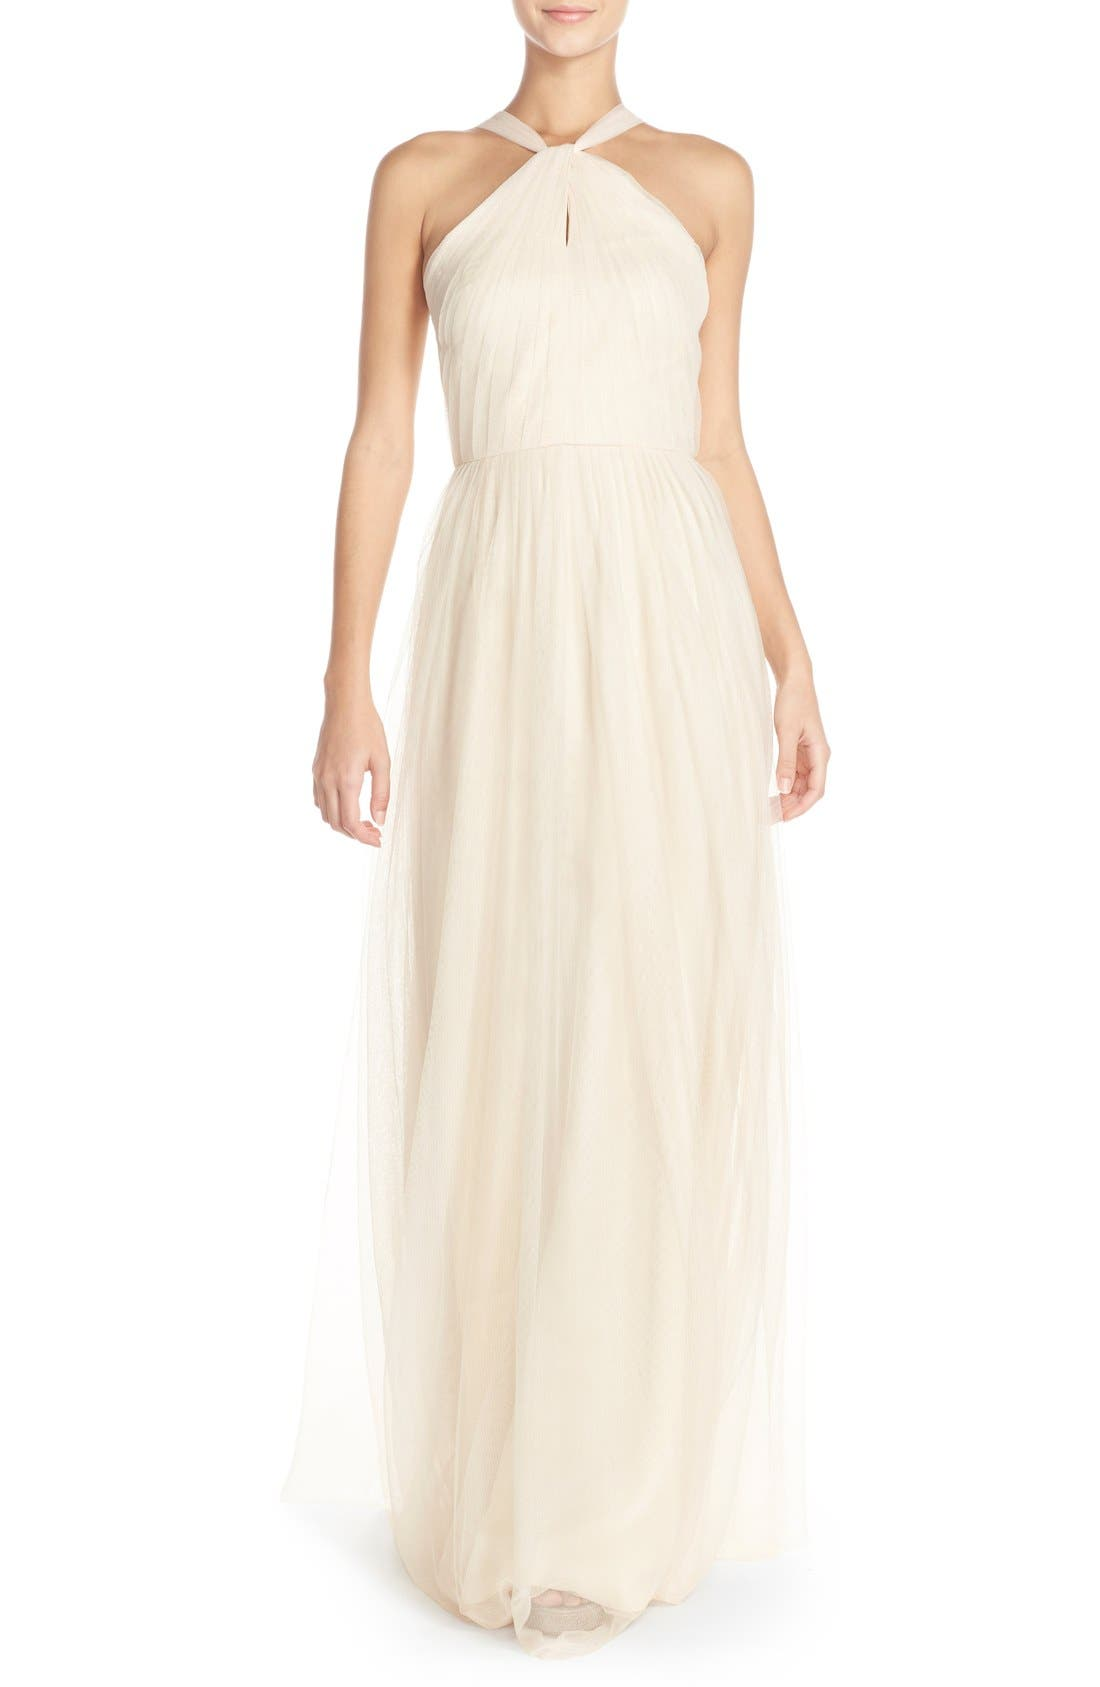 Alternate Image 1 Selected - Donna Morgan 'Ava' Halter Style Mesh A-Line Gown